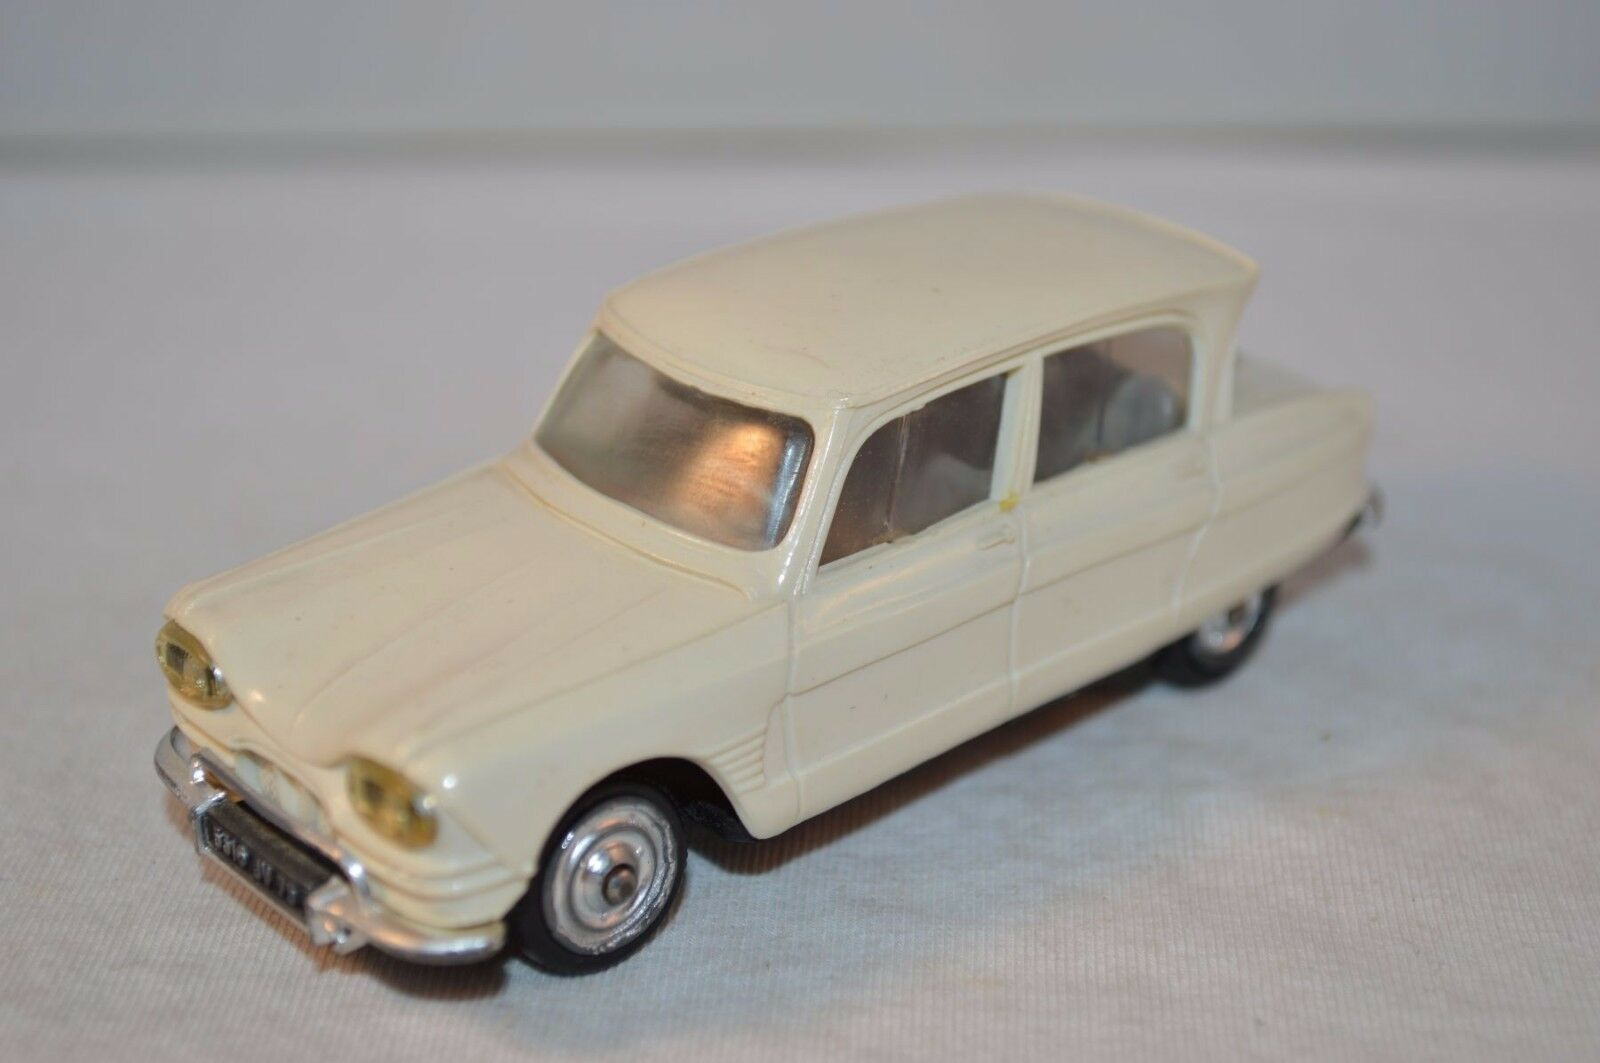 Norev 54 Citroen Citroen Citroen AMI 6 plastique perfect mint all original condition da8373